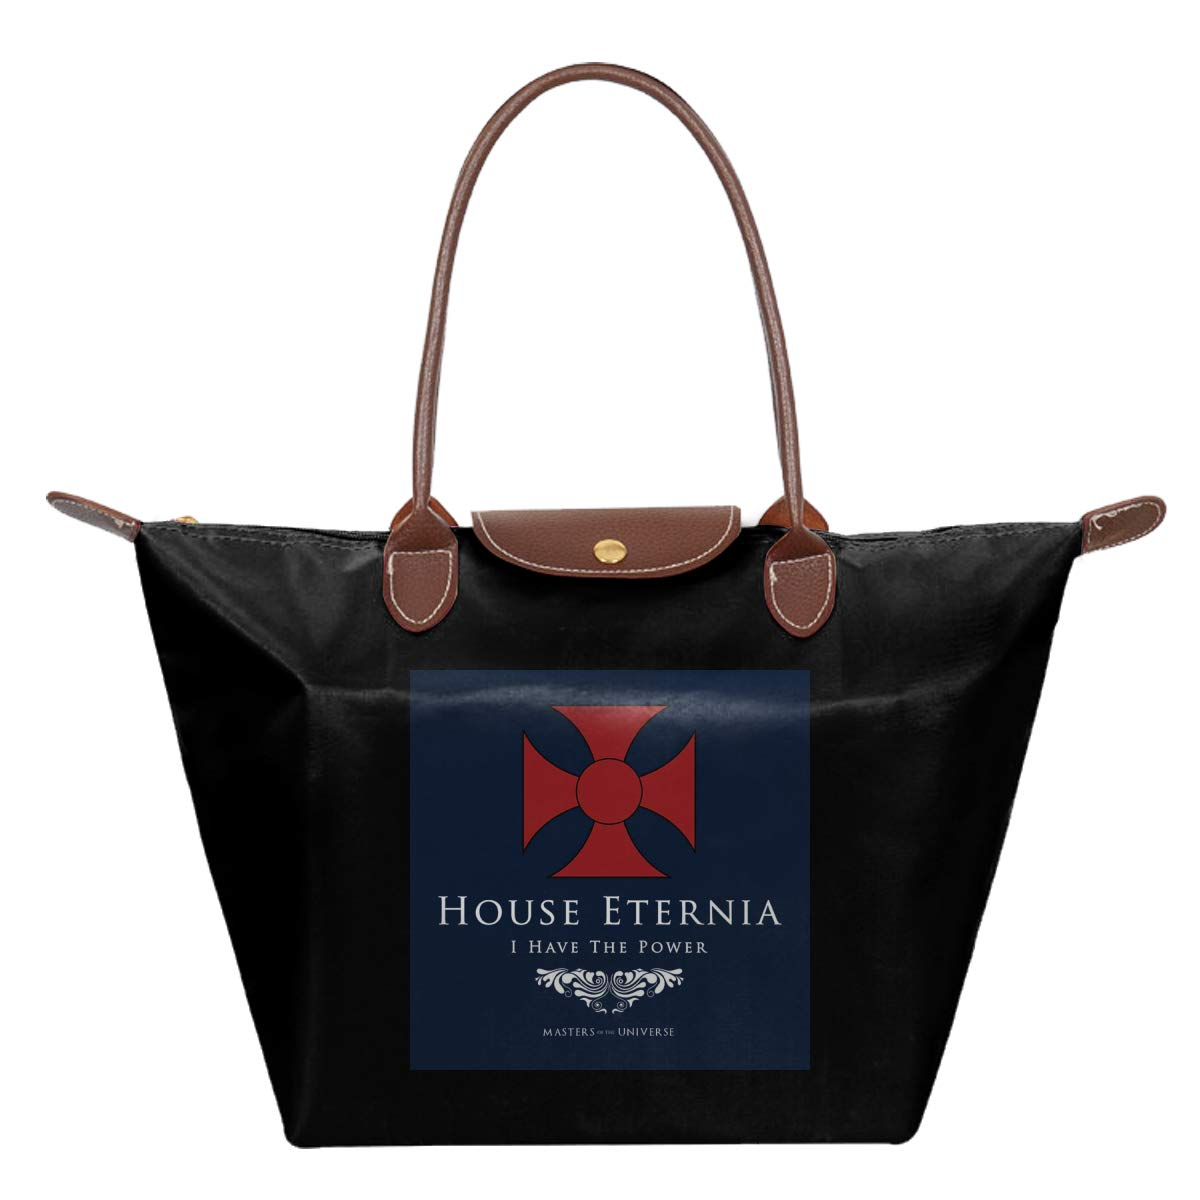 House Eternia I Have The Power He Man Masters Of The Universe Waterproof Leather Folded Messenger Nylon Bag Travel Tote Hopping Folding School Handbags